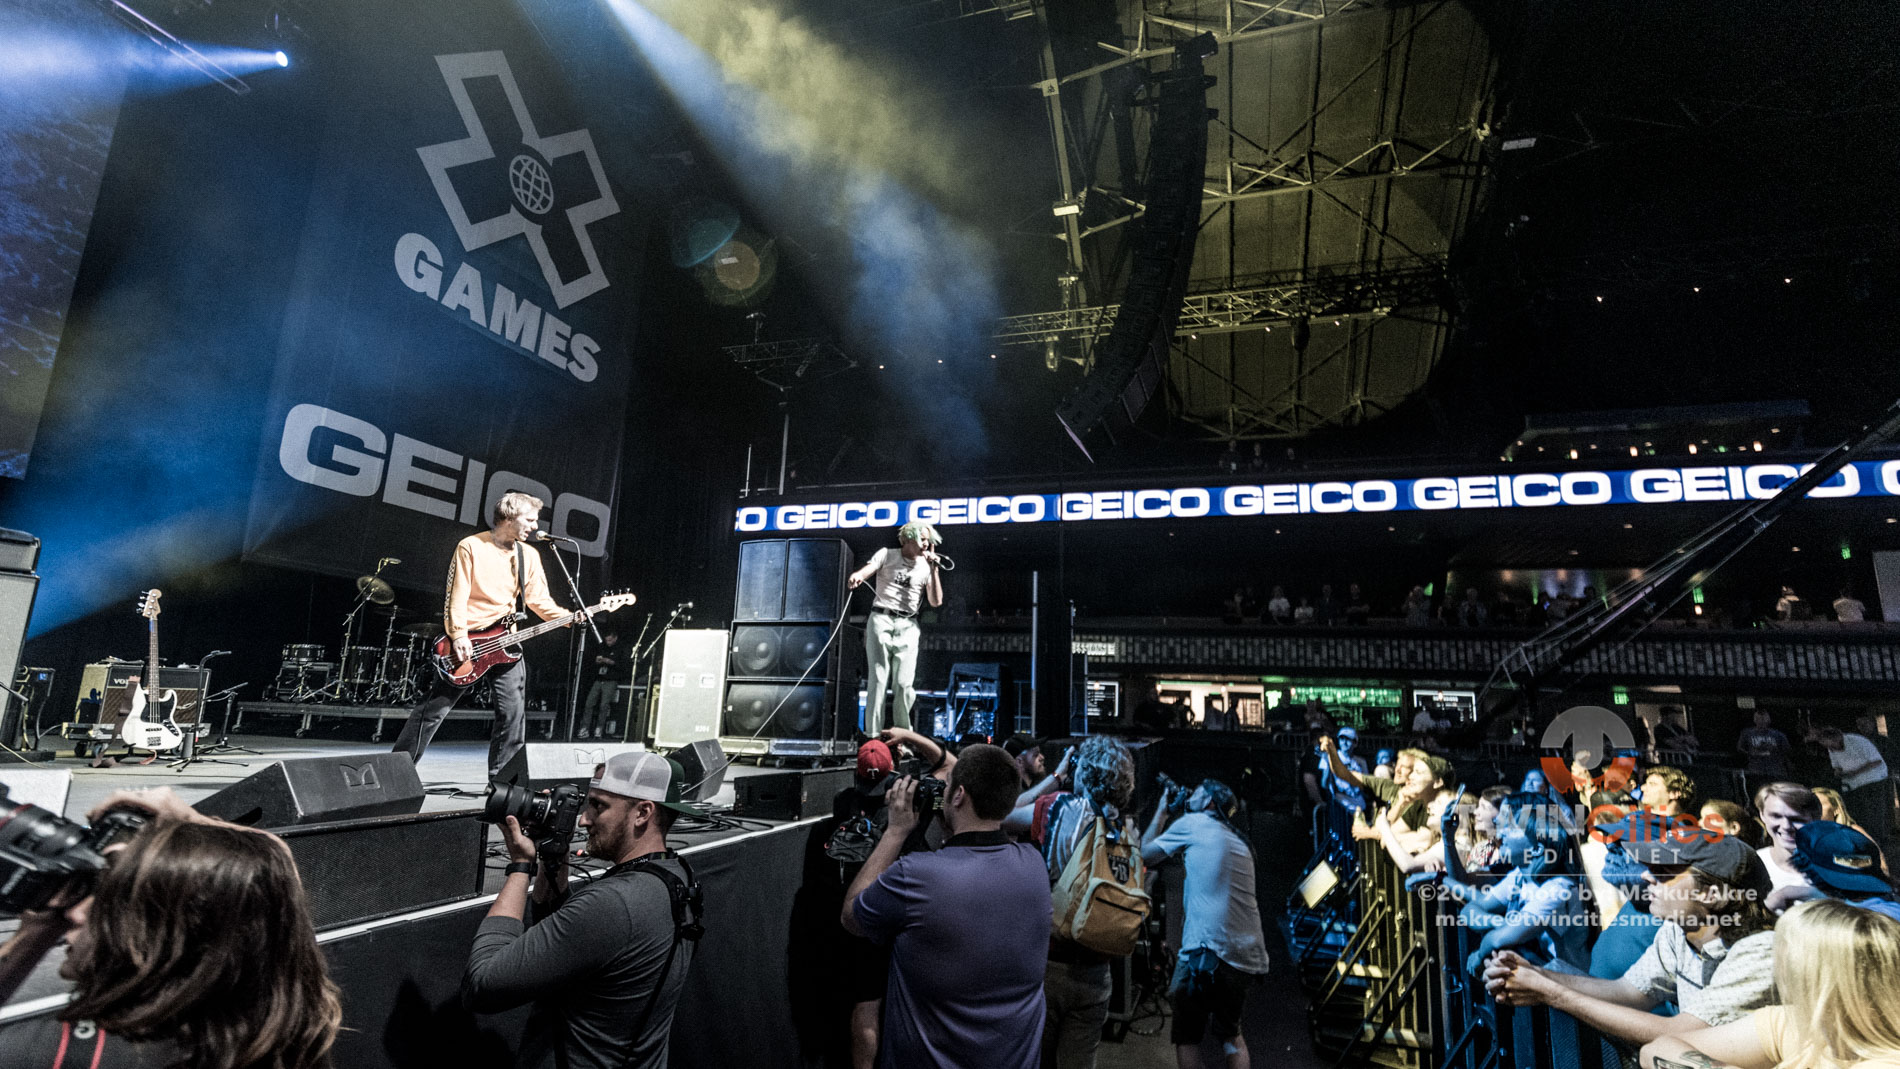 2019-X-Games-Day-1-SWMRS-2